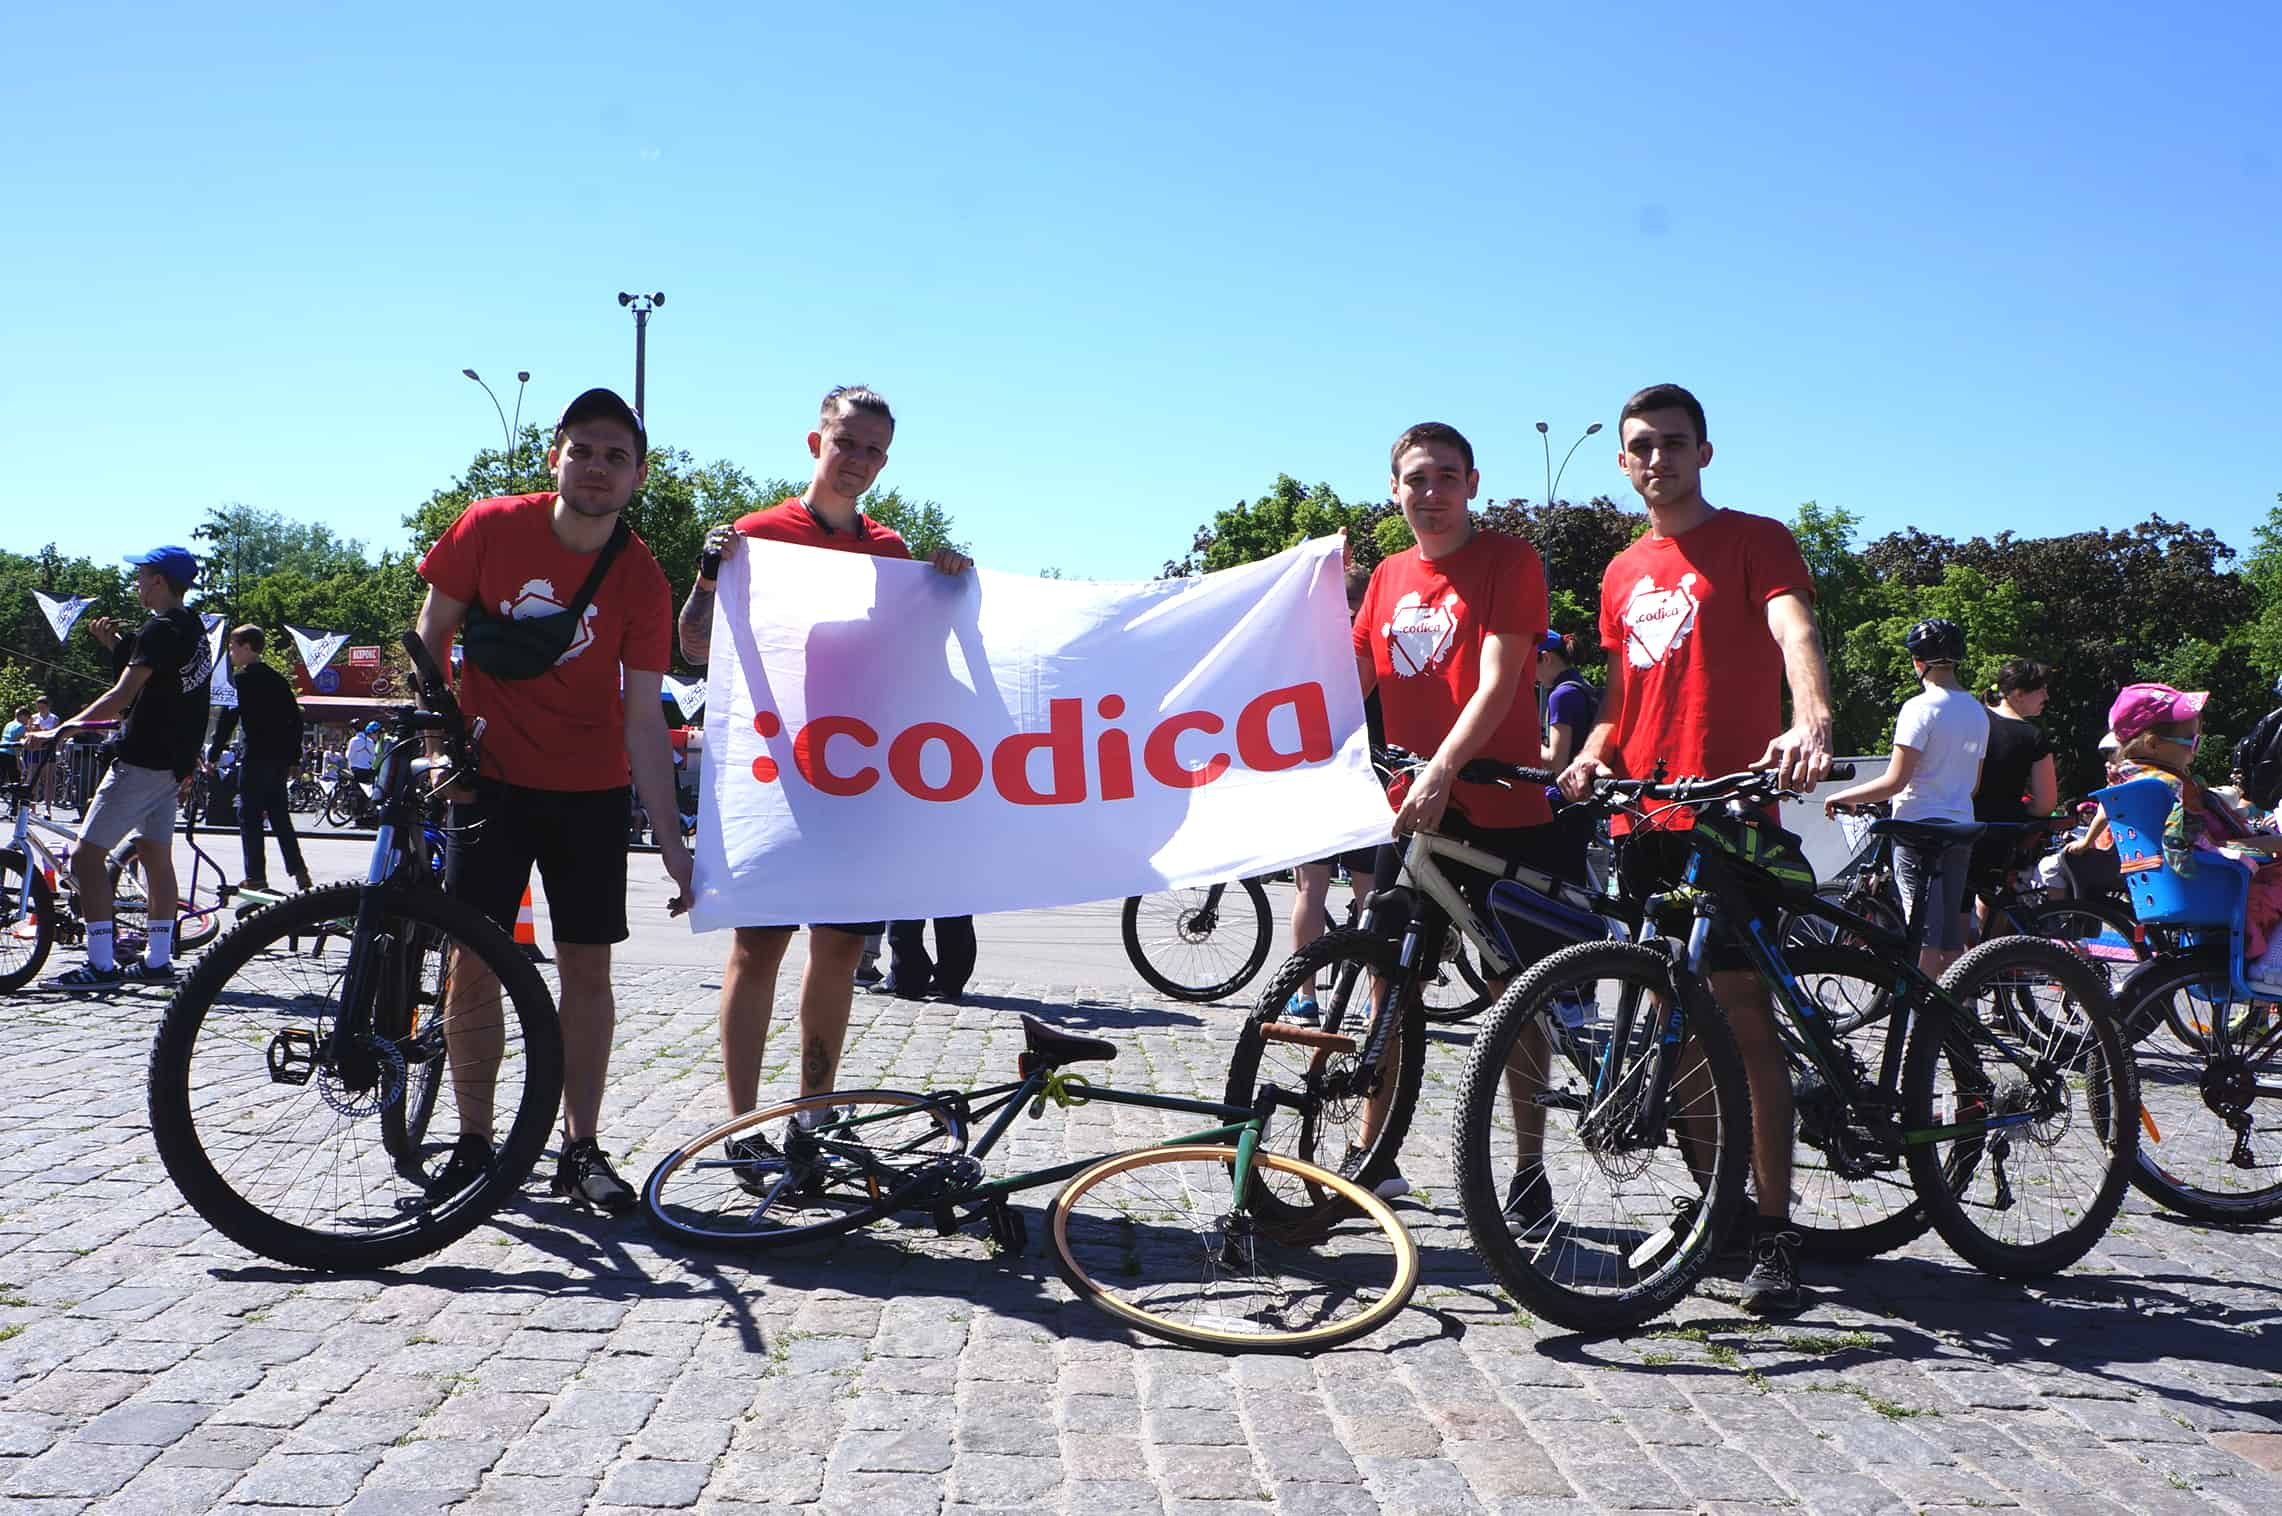 Codica team participated in Bicycle Day Kharkiv 2019